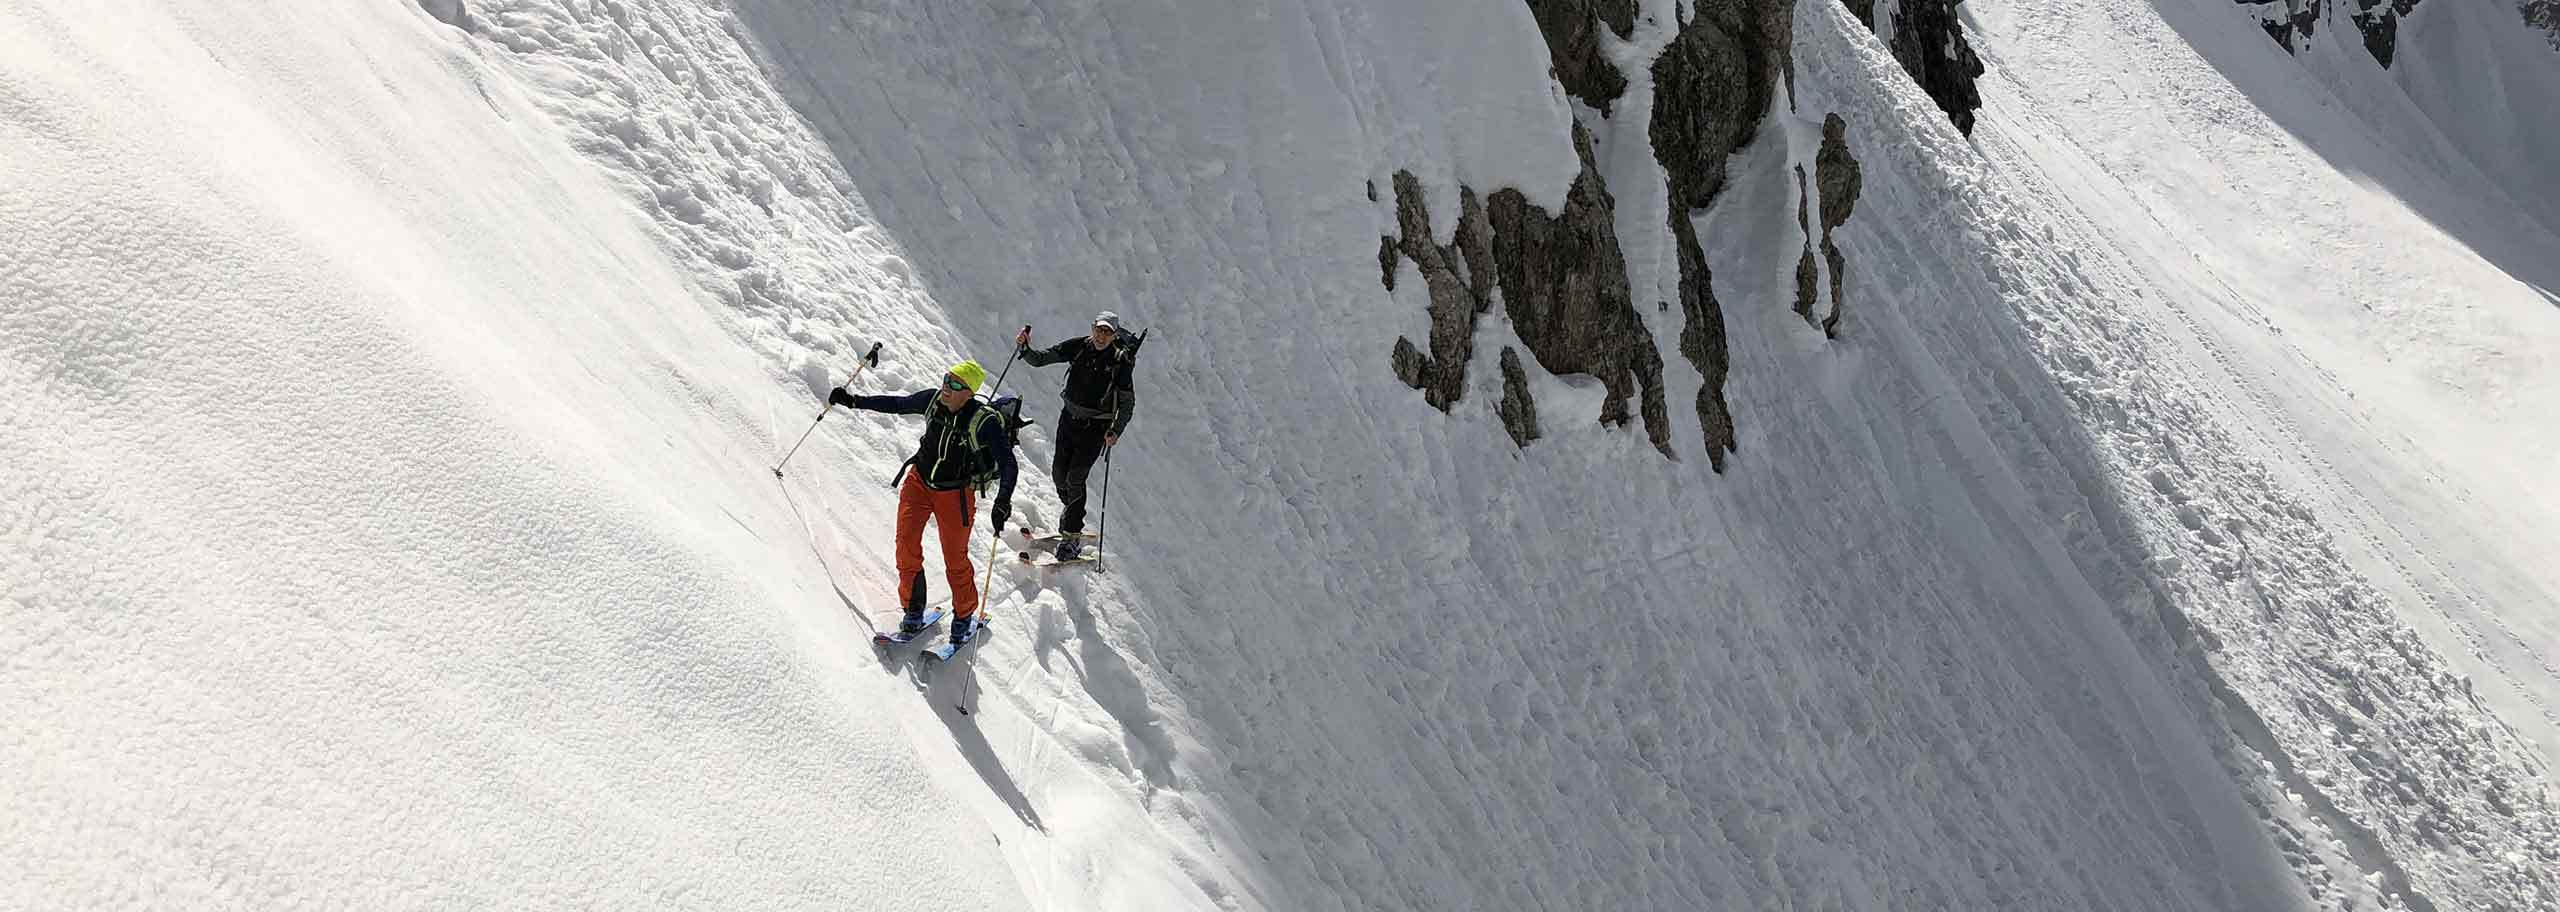 Ski Mountaineering with a Mountain Guide in Cavalese and Val di Fiemme